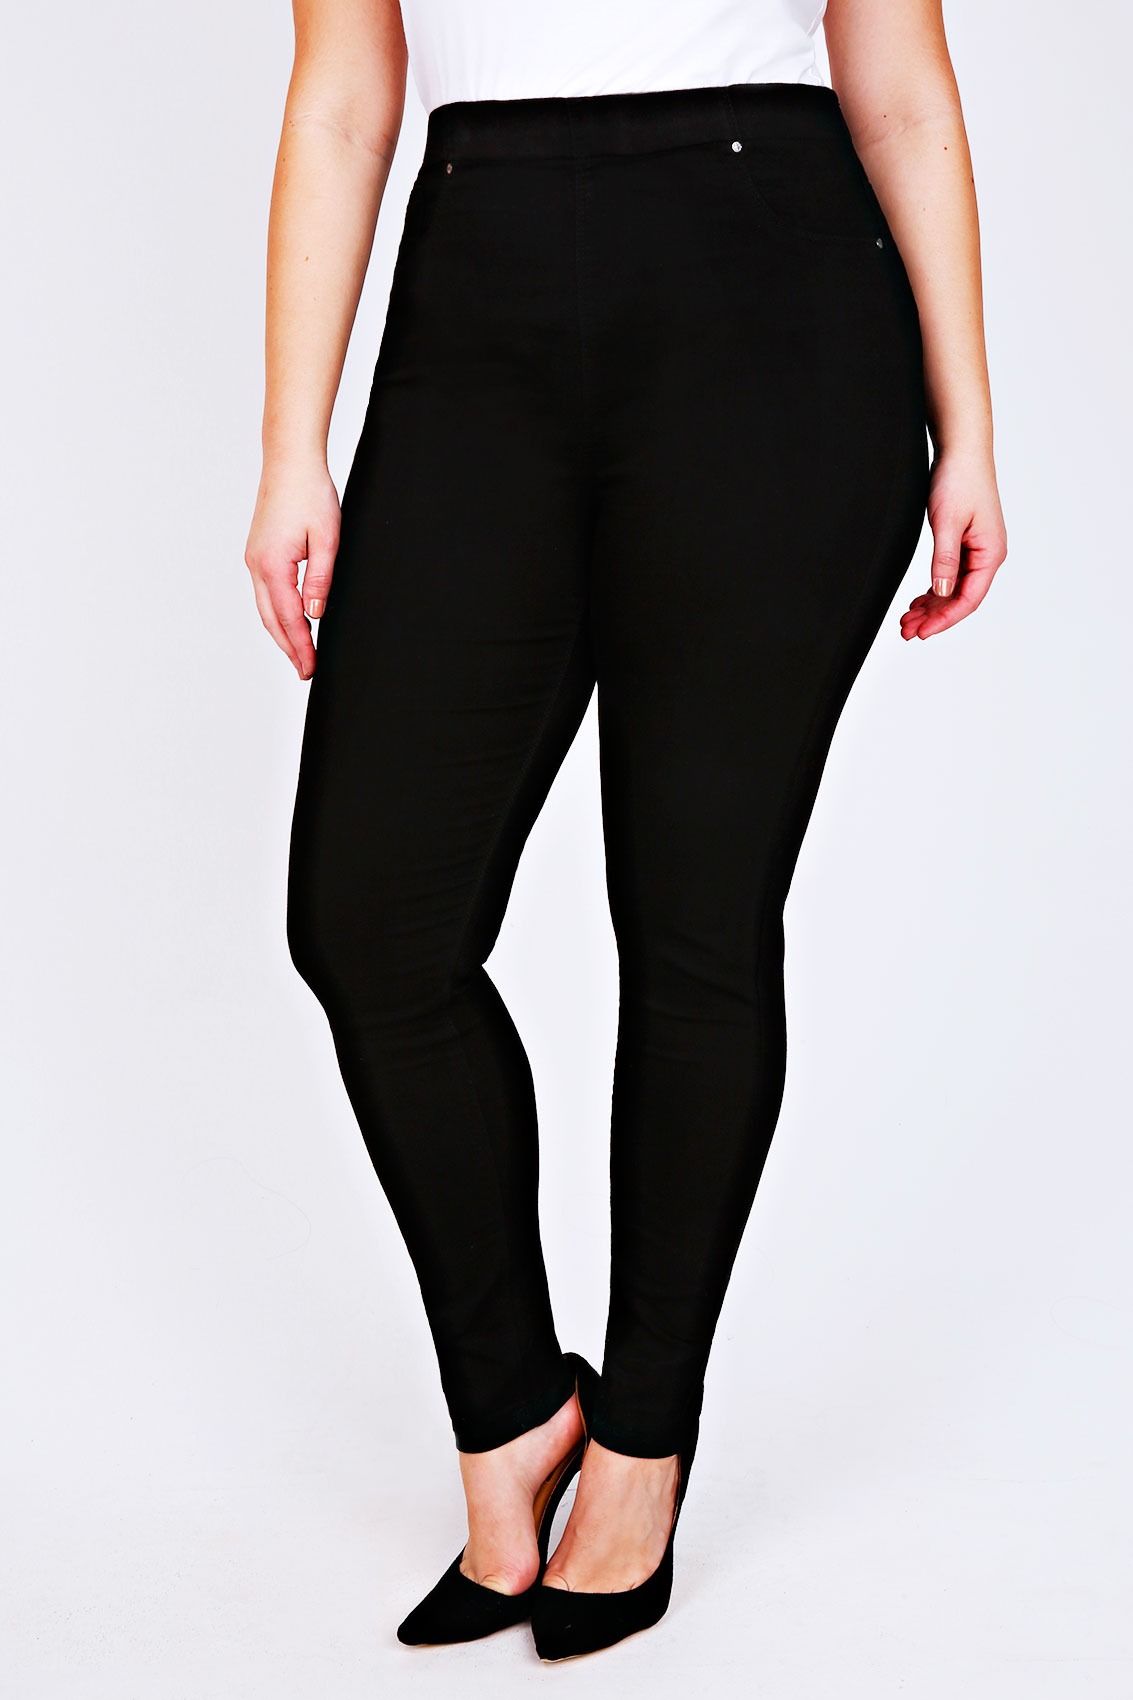 Buy Jeggings from the Womens department at Debenhams. You'll find the widest range of Jeggings products online and delivered to your door. Shop today!